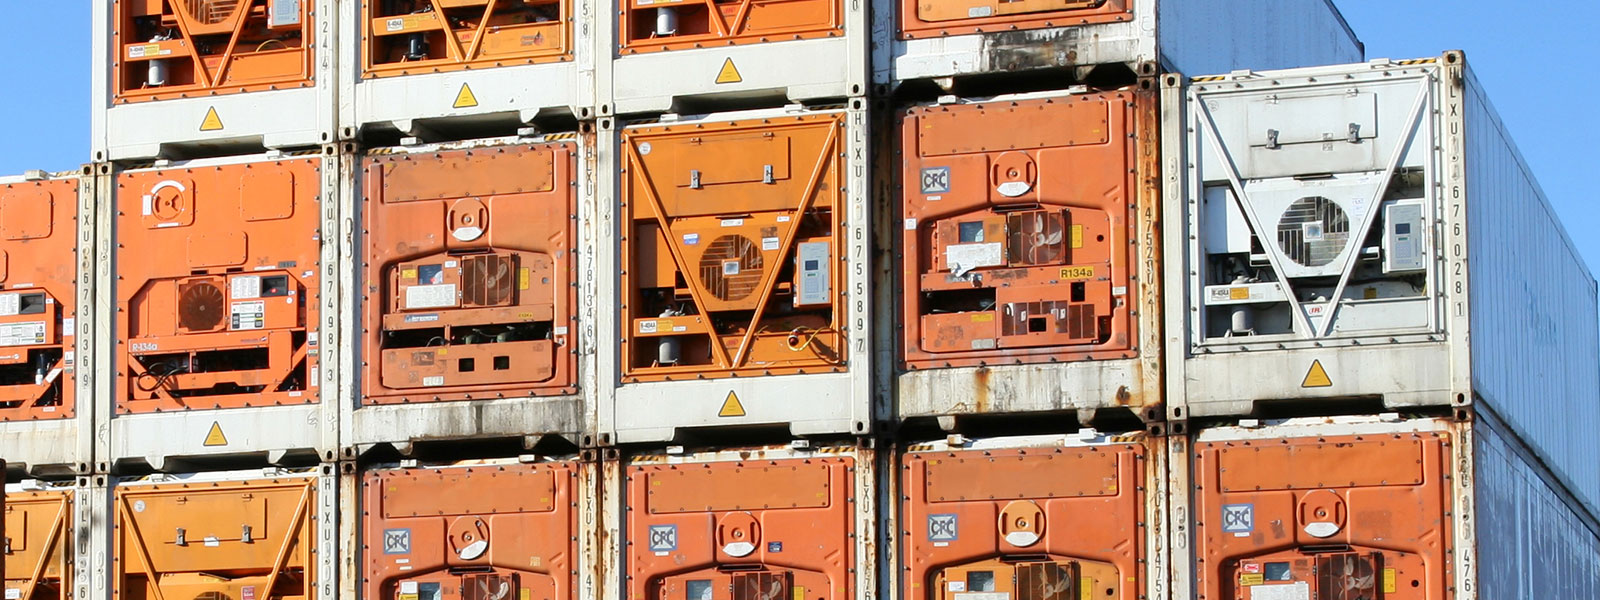 Refrigerated Containers in a yard